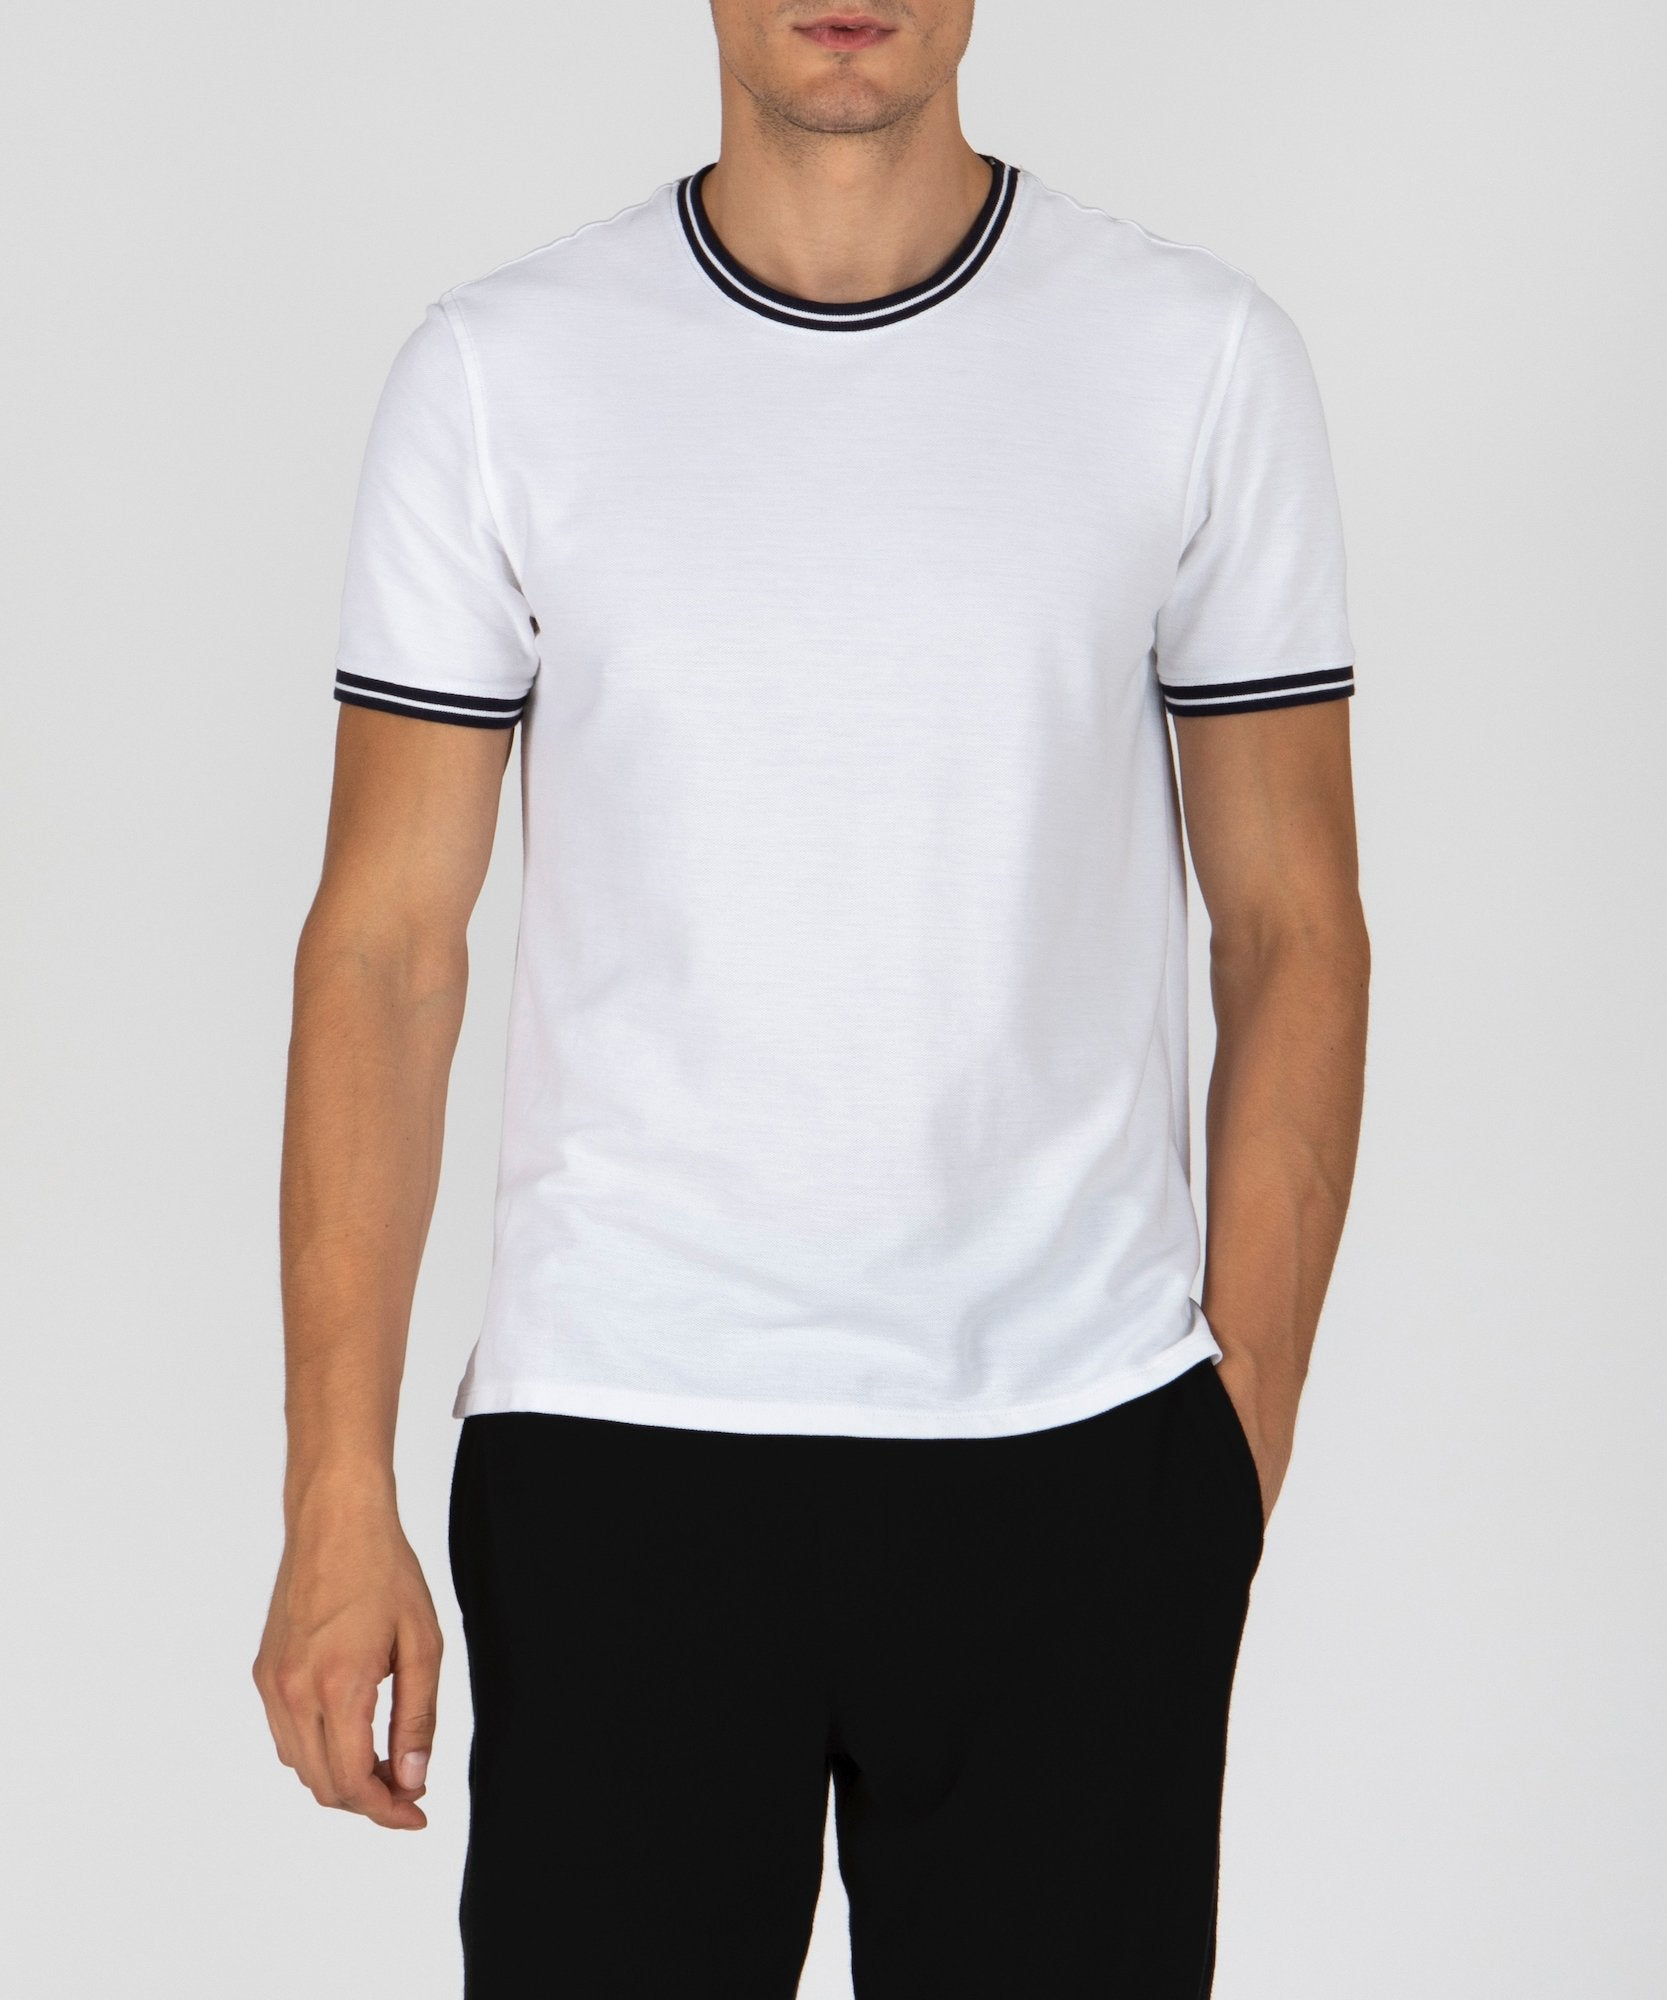 White Tipped Pique Crew Neck Tee - Men's Pique Short Sleeve Tee by ATM Anthony Thomas Melillo